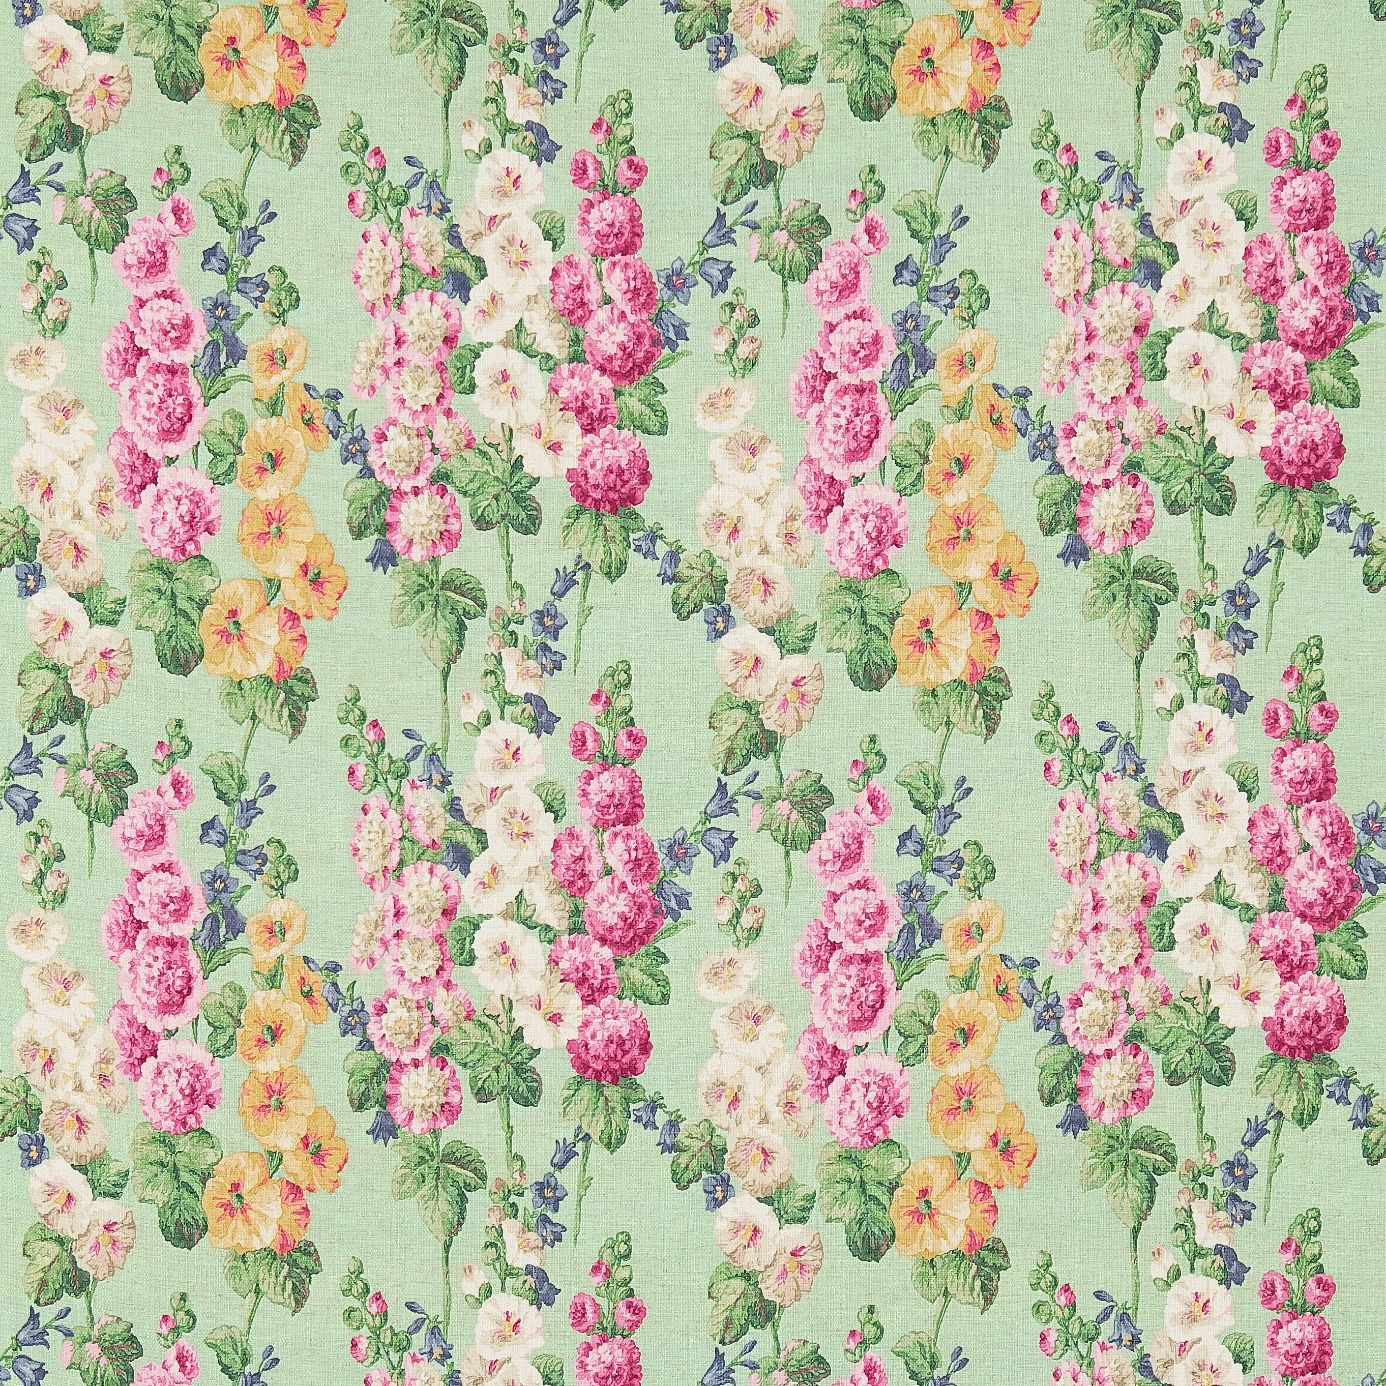 sanderson traditional to high quality designer fabrics and wallpapers products british